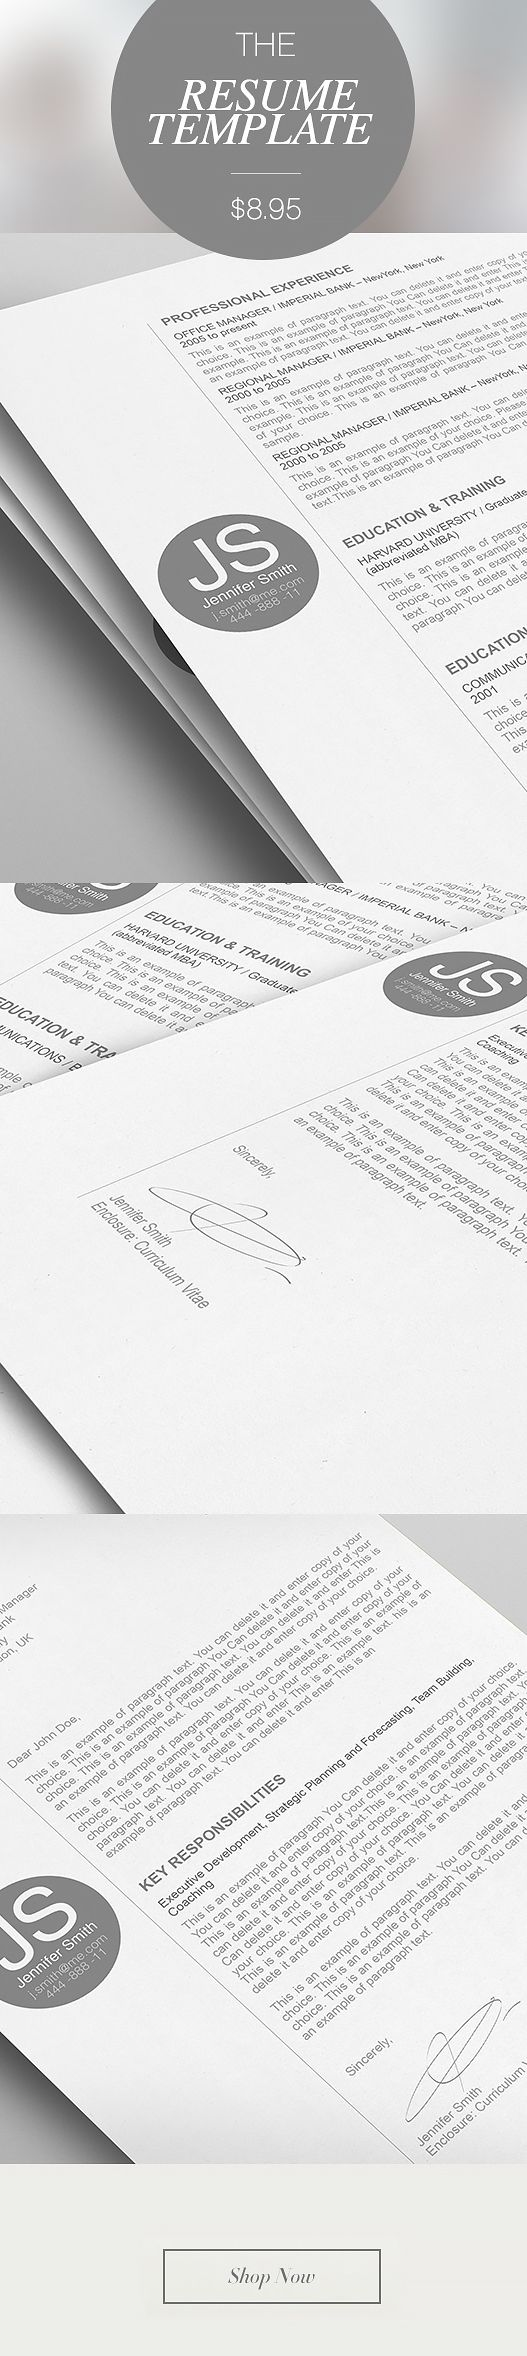 elegant resume template 110580 is for anyone looking to create a professional resume and cover letter with ease edit in ms word and iwork pages